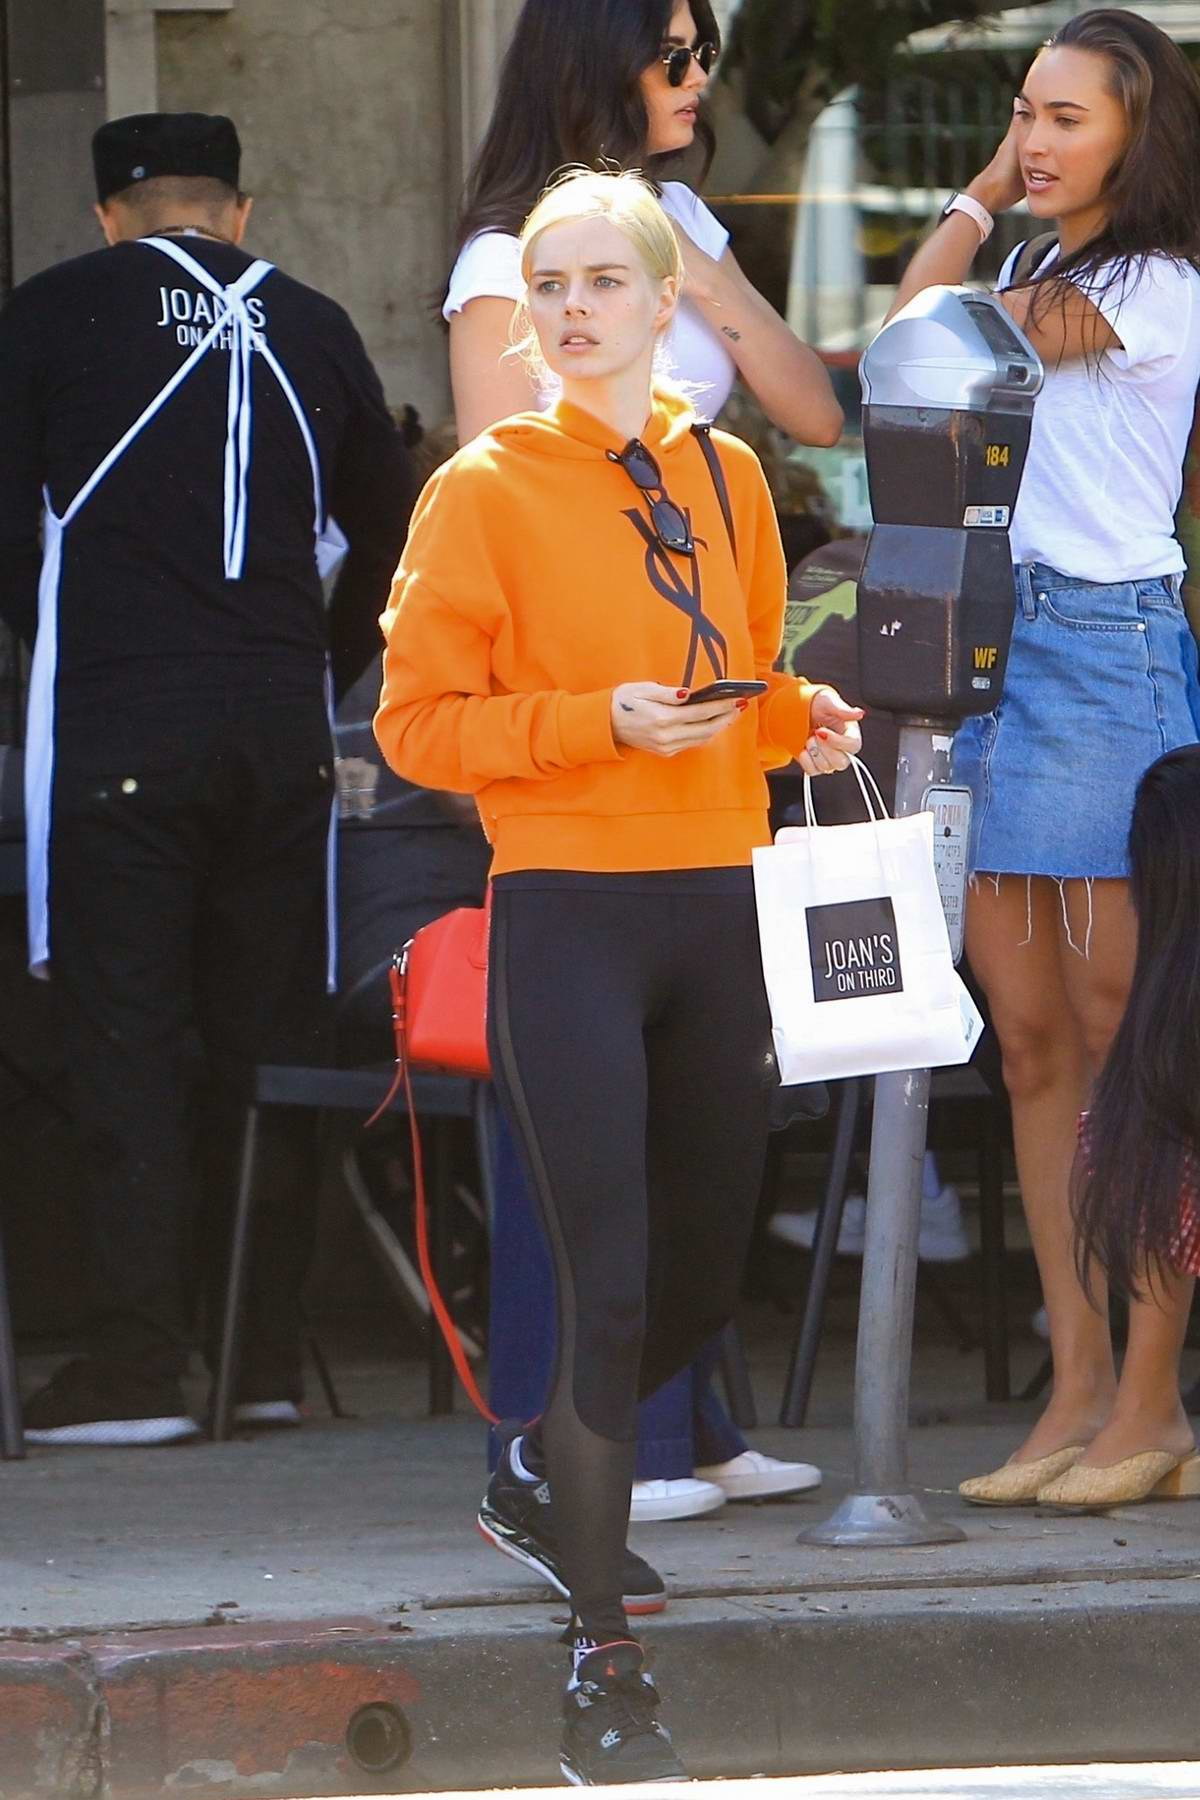 Samara Weaving wears an orange hoodie and black leggings for lunch with friends at Joan's on Third in Los Angeles